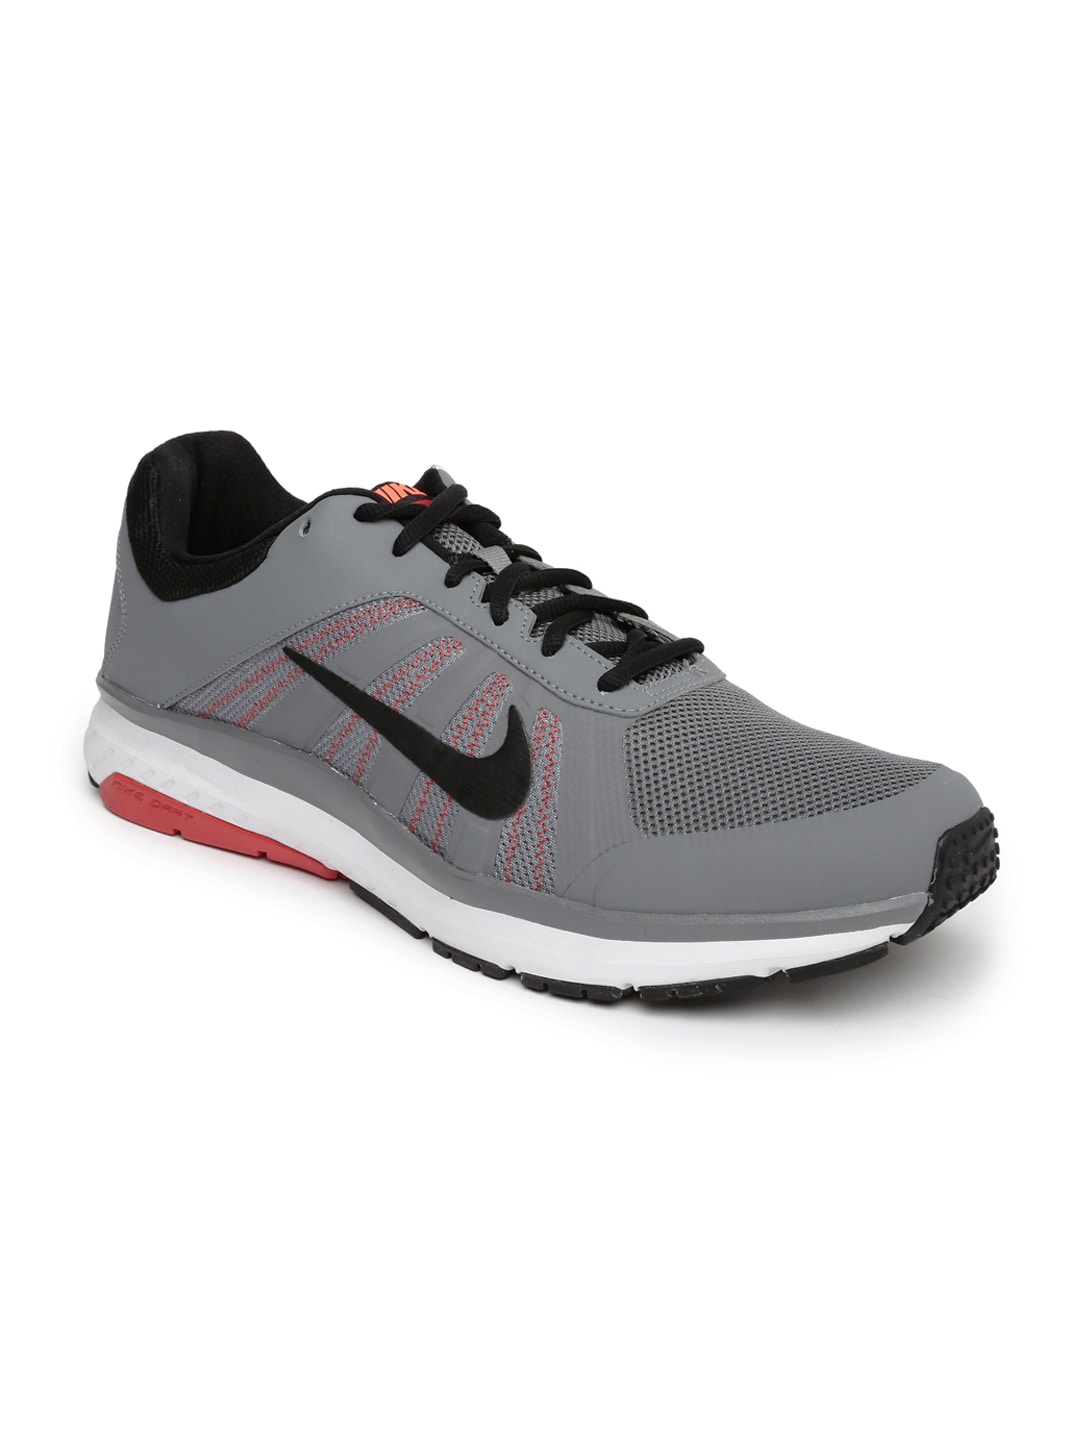 Nike Dart 12 Msl Grey Running Shoes for Men online in India at Best price on 10th November 2018 ...